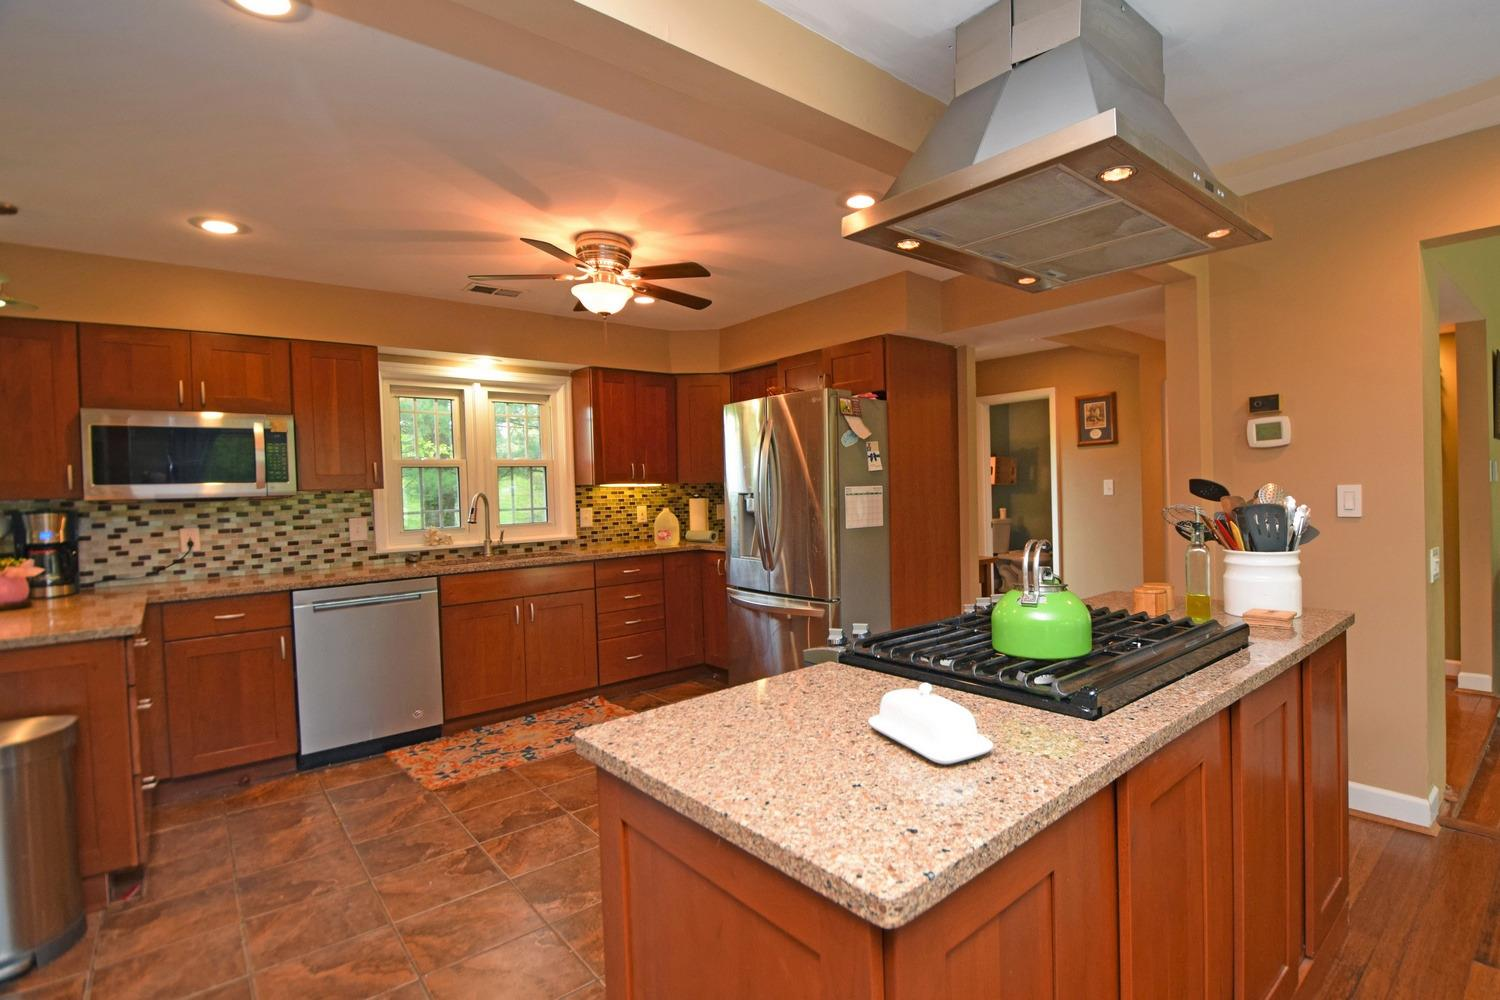 Photo 2 for 1678 Apgar Rd Stonelick Twp., OH 45150